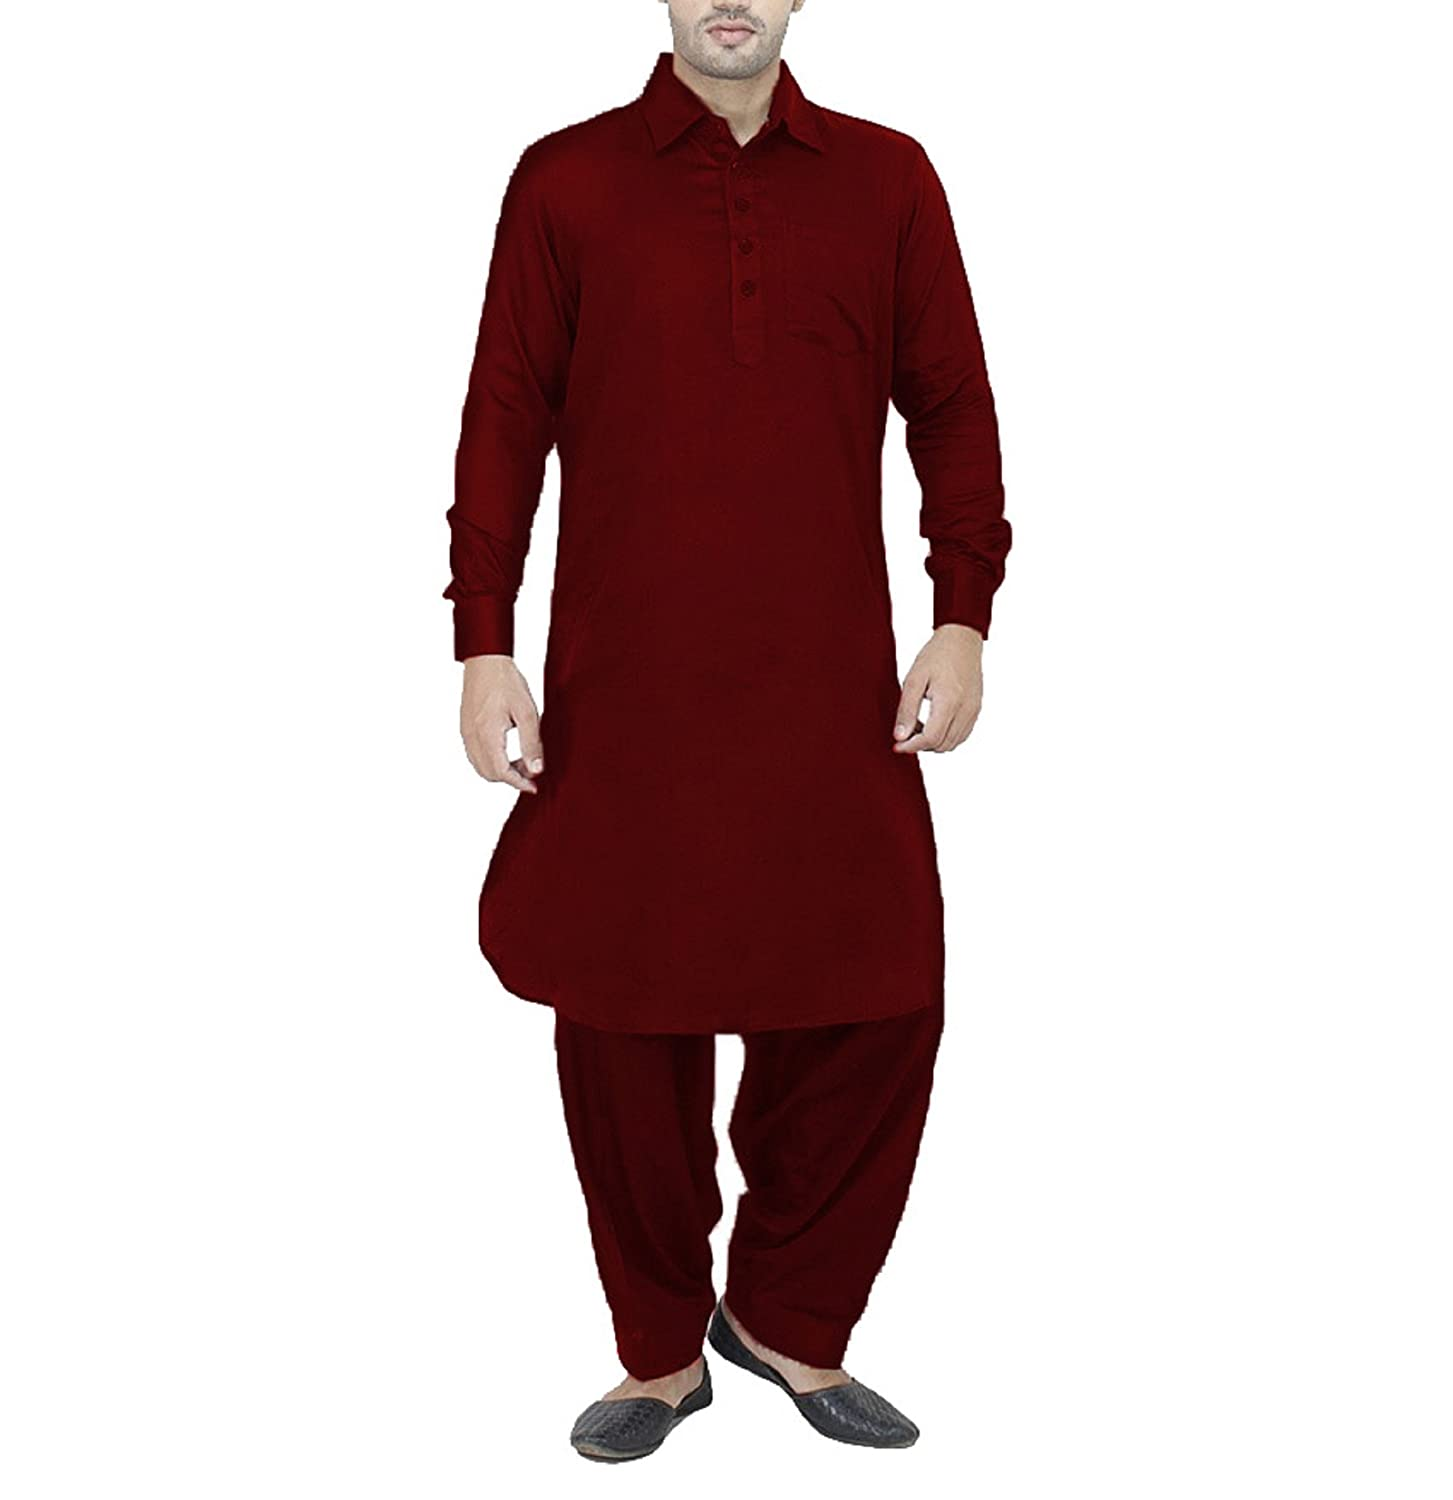 Royal Kurta Men's Linen Pathani Suit